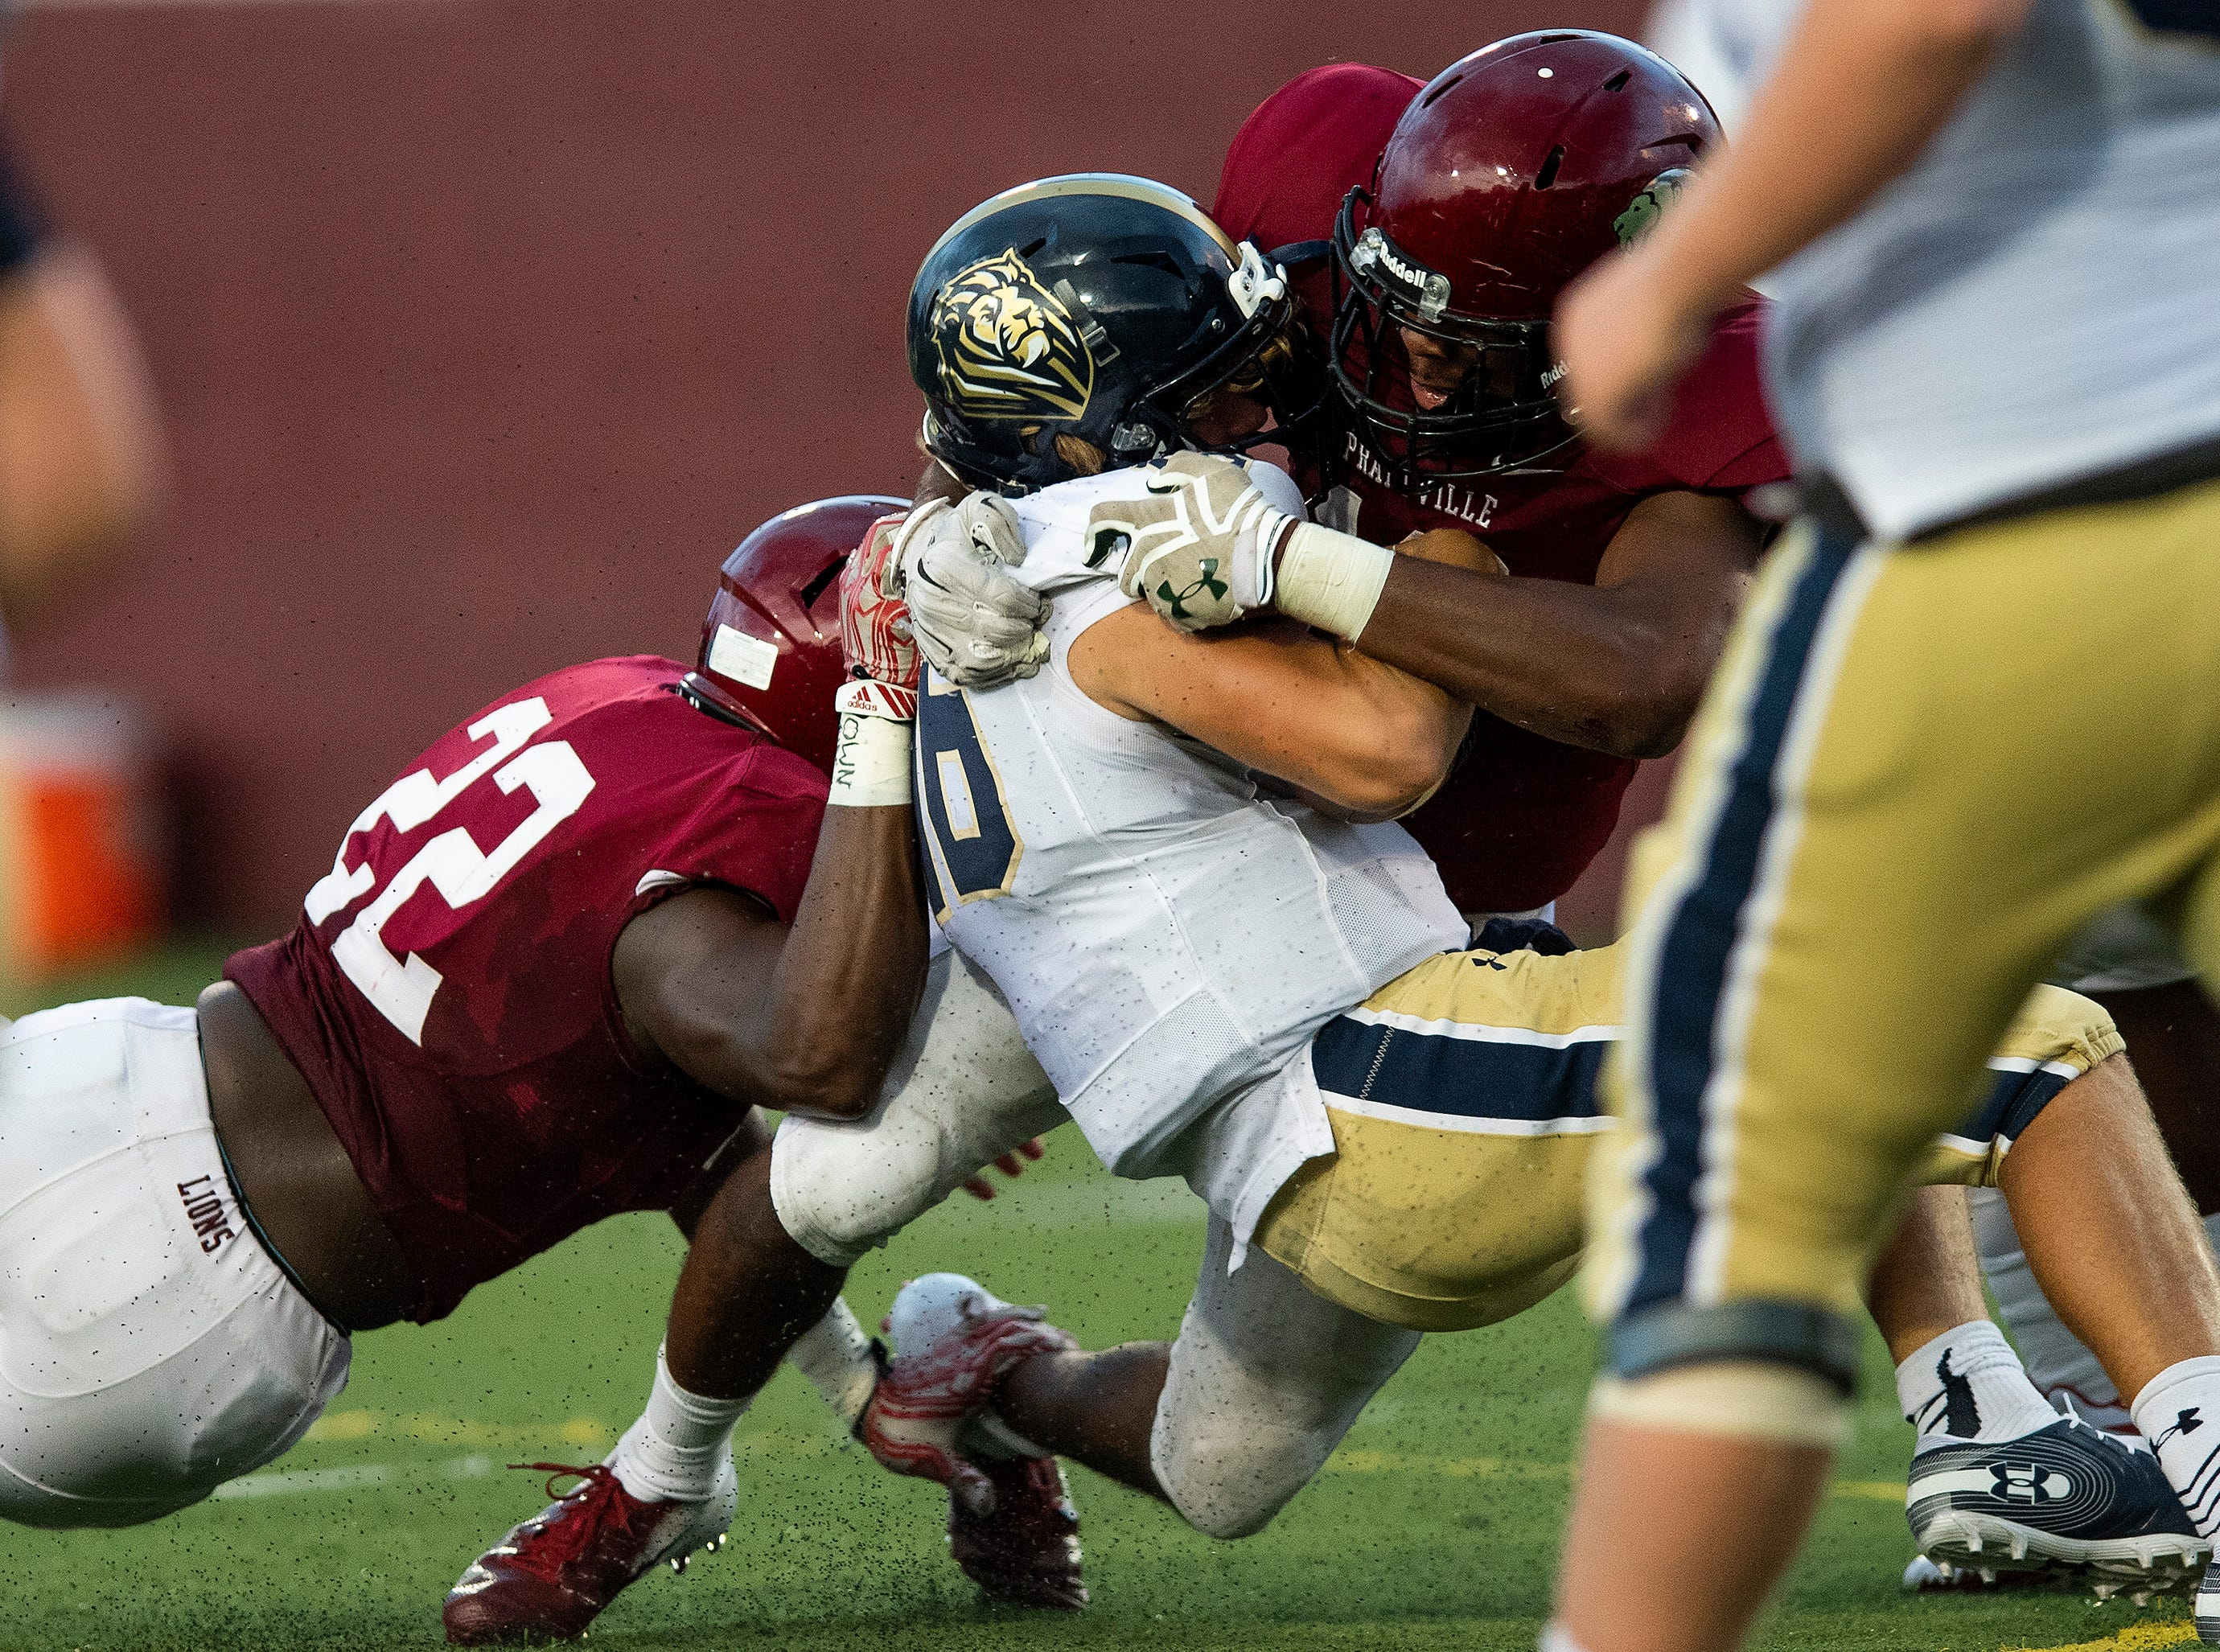 Prattville's Jacob Howard (10) and Willie Willis (22) stop  Foley's Clint White. at Stanley-Jensen Stadium in Prattville, Ala., on Friday August 24, 2018.